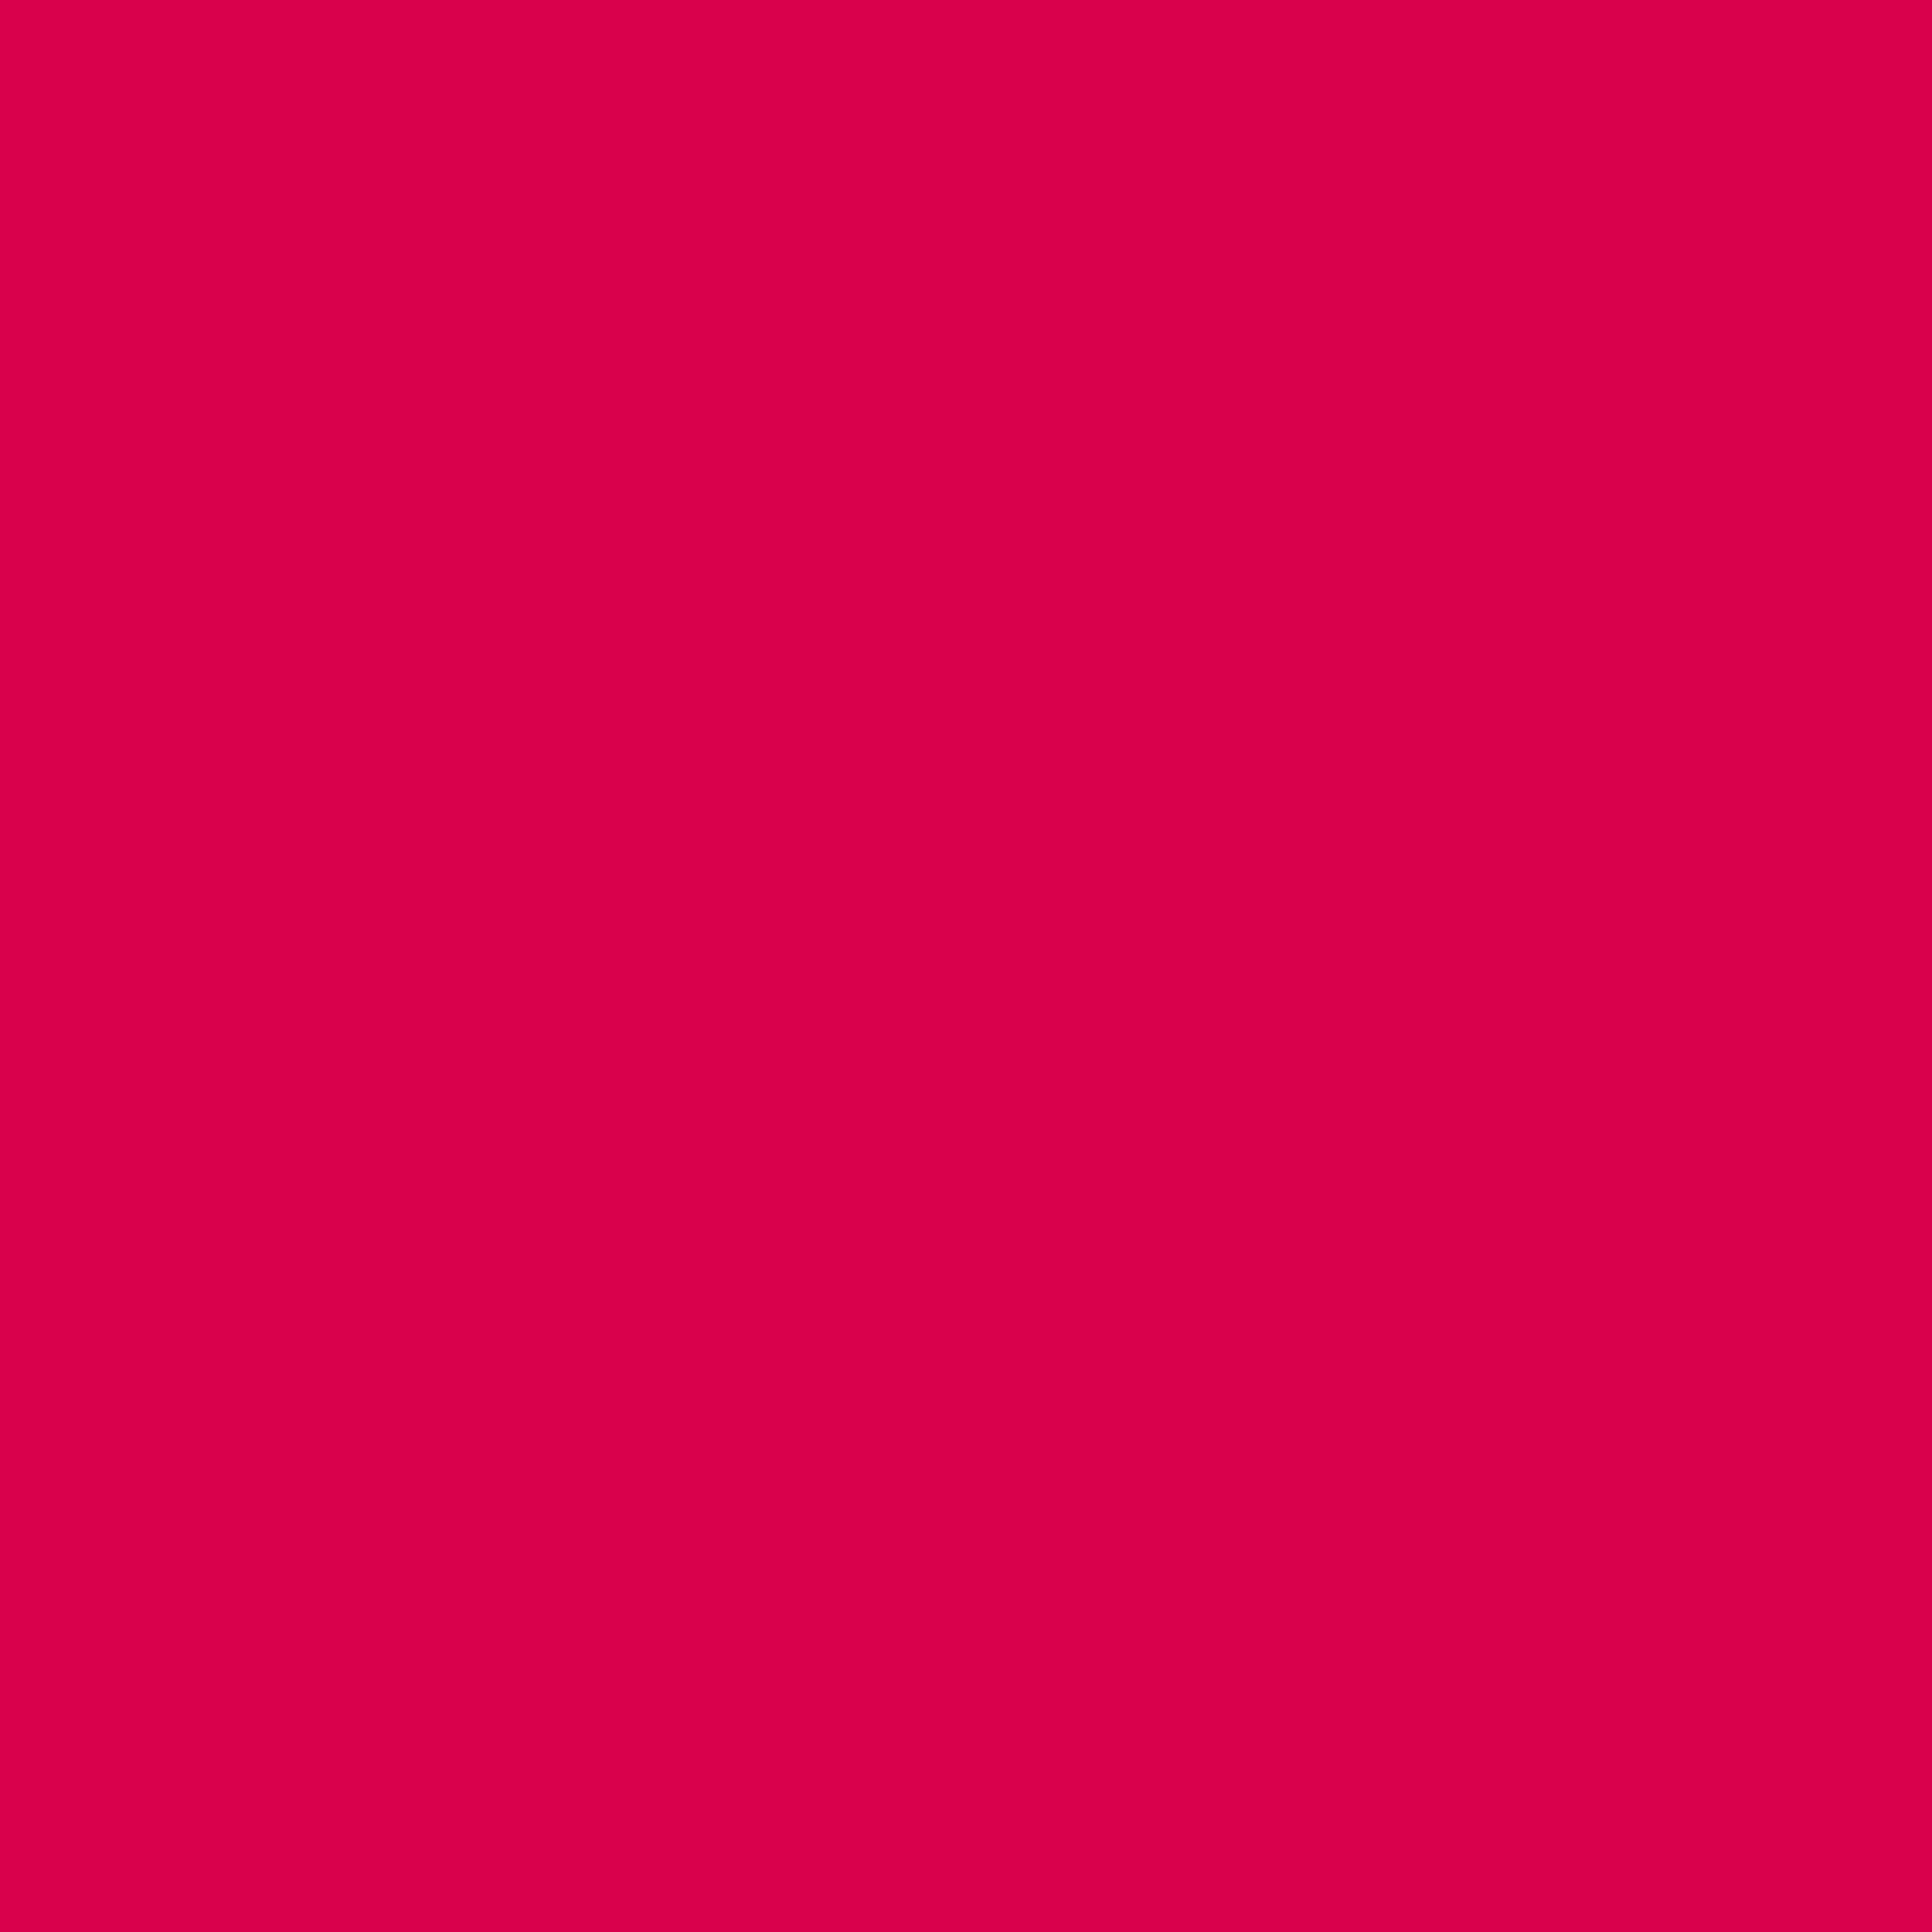 2732x2732 UA Red Solid Color Background